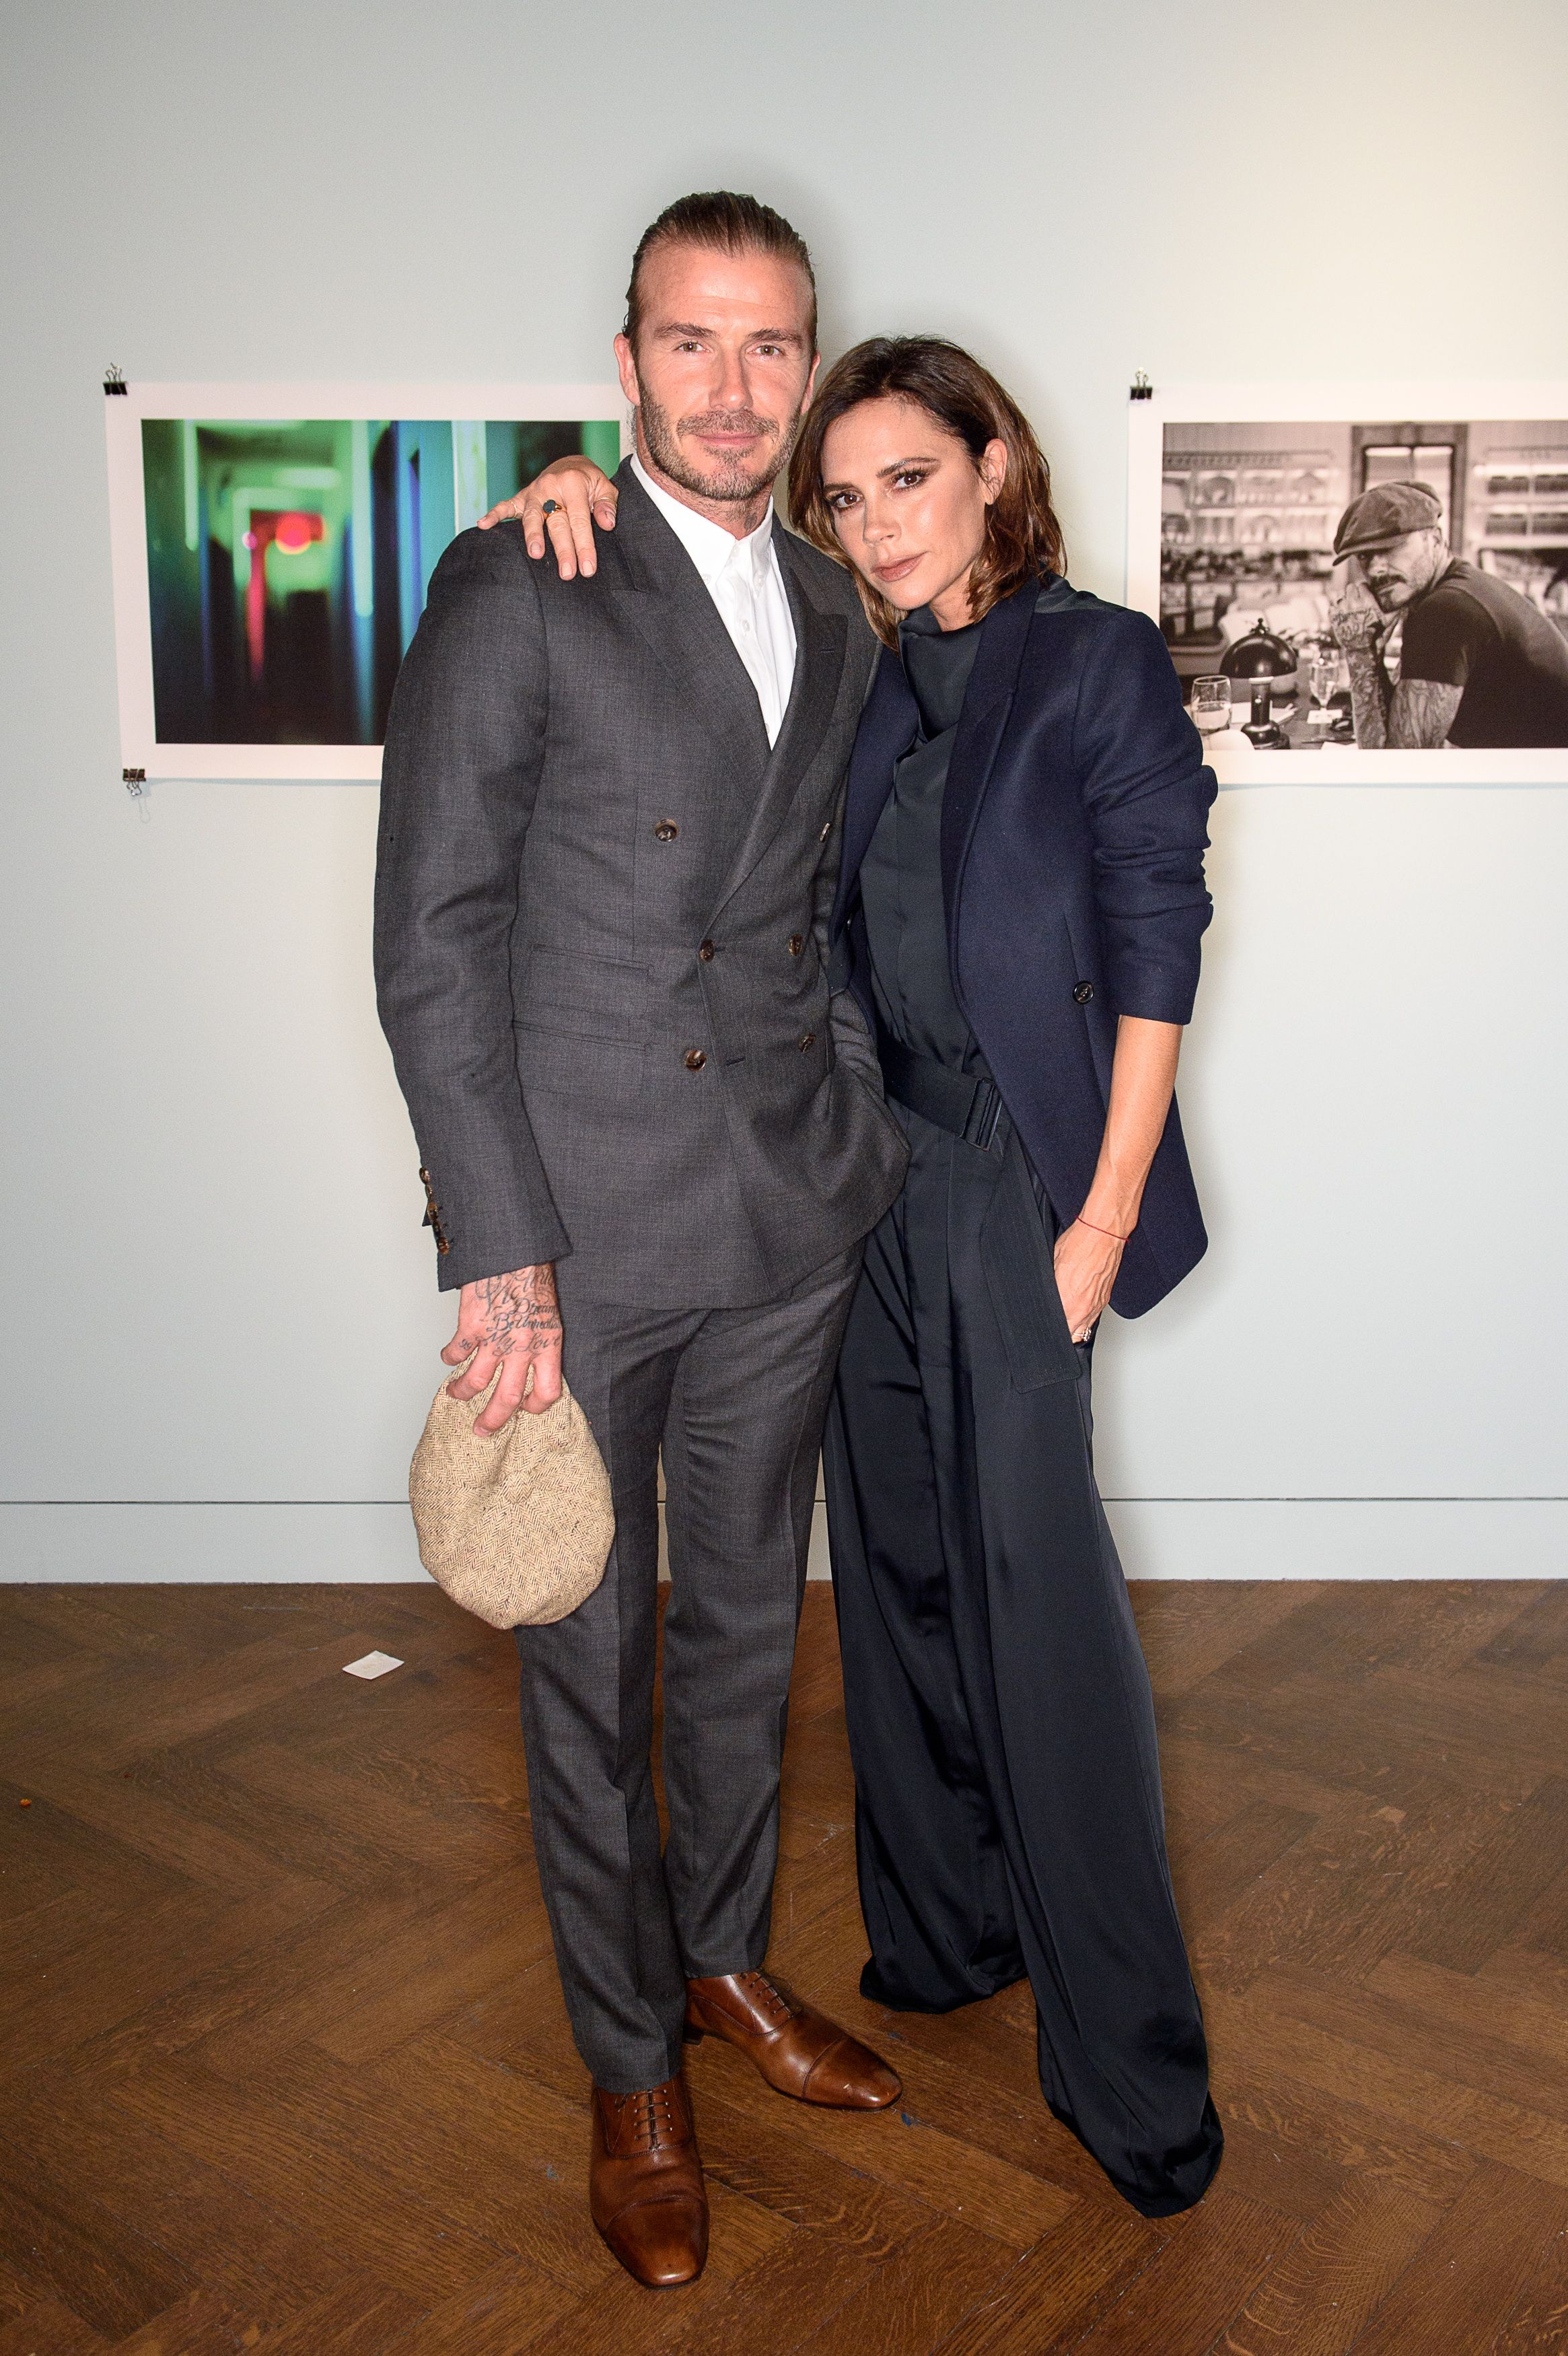 David Beckham and Victoria BeckhamBrooklyn Beckham: 'What I See' exhibition and book launch at Christie's in partnership with Polo Ralph Lauren, New Bond Street, London, UK - 27 Jun 2017